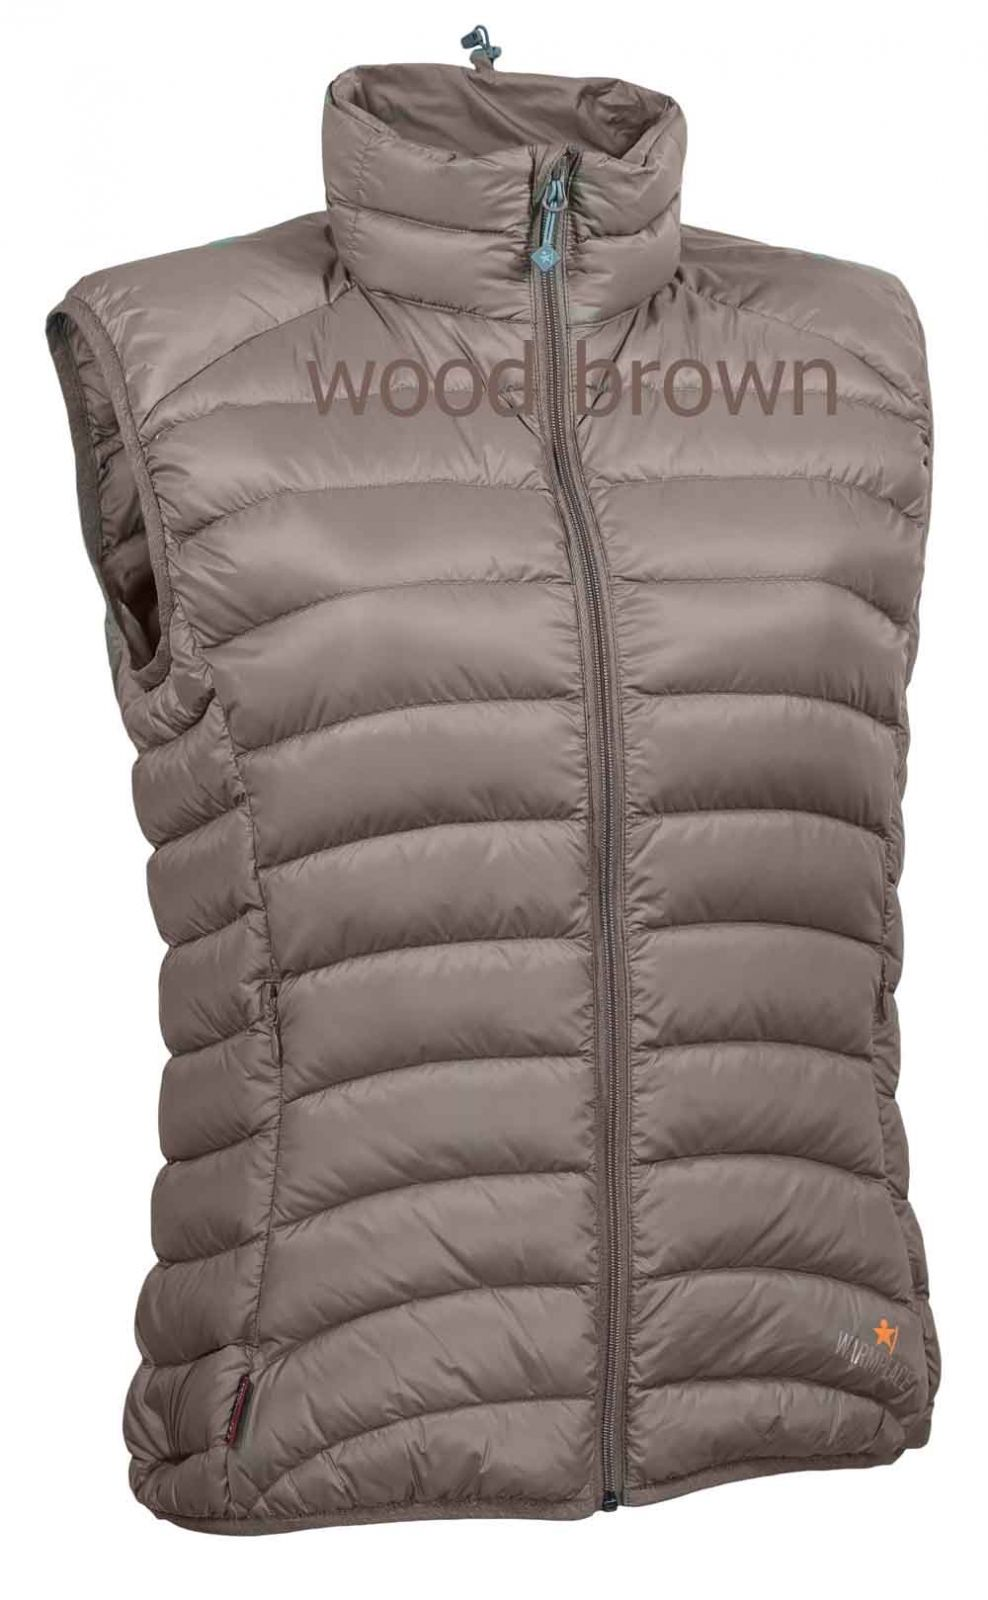 Tazz-Sport - Warmpeace Swan lady vesta wood brownl